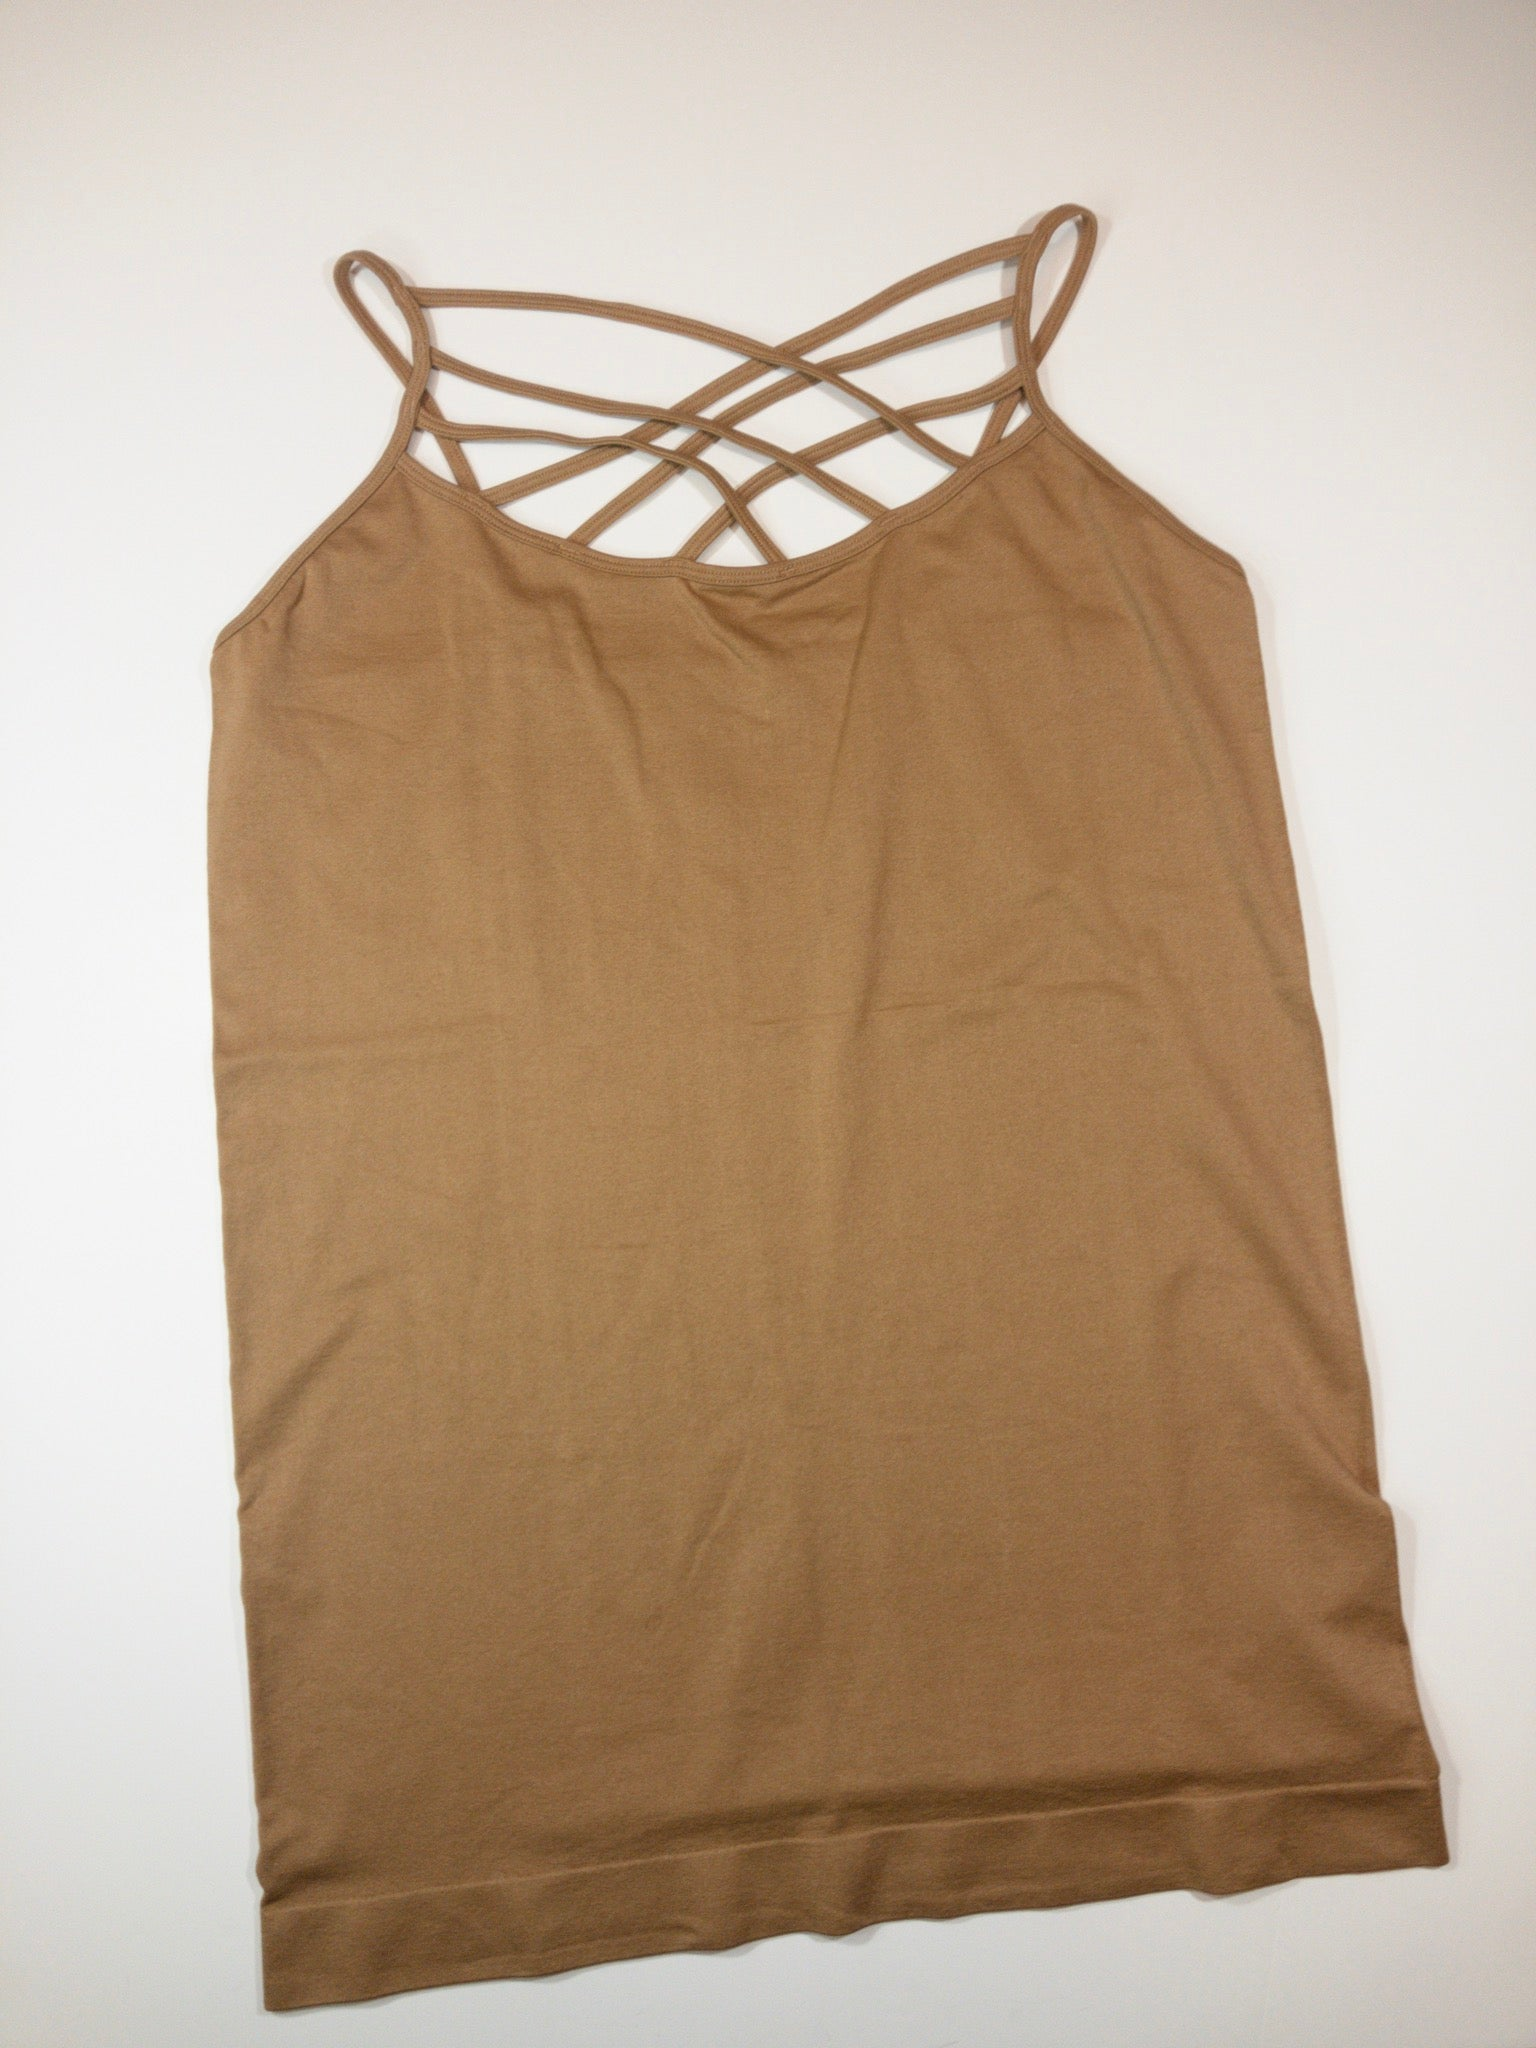 Zenana PLUS SEAMLESS TRIPLE CRISS-CROSS FRONT CAMI - Coffee - 2X/3X - True Bliss Boutique